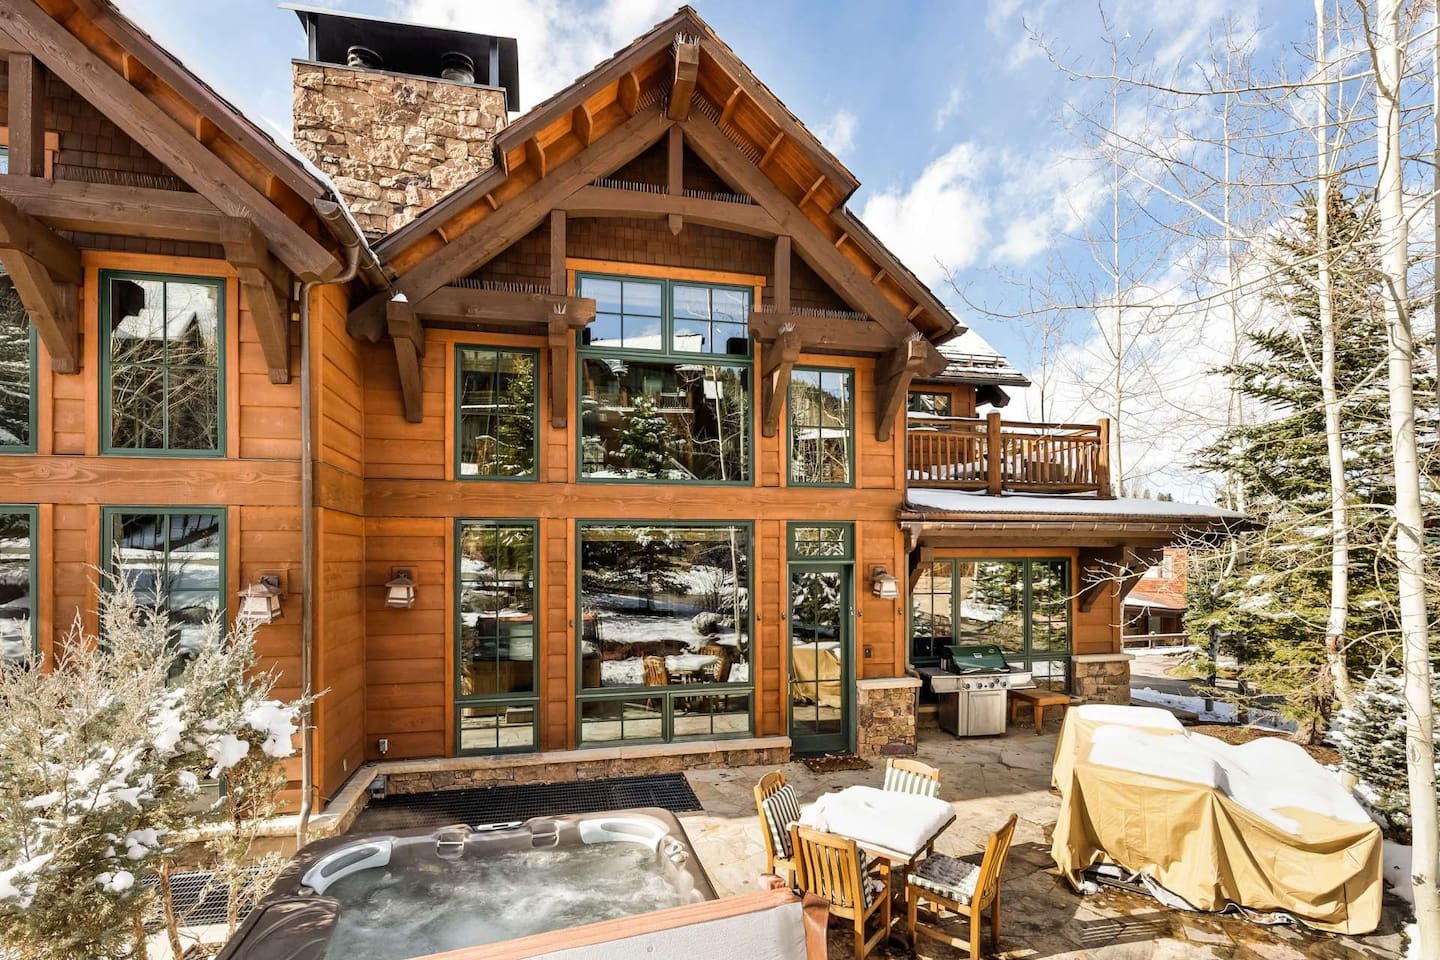 The outdoor patio of your vacation homes has a gas grill, private hot tub and small dining area you can enjoy.